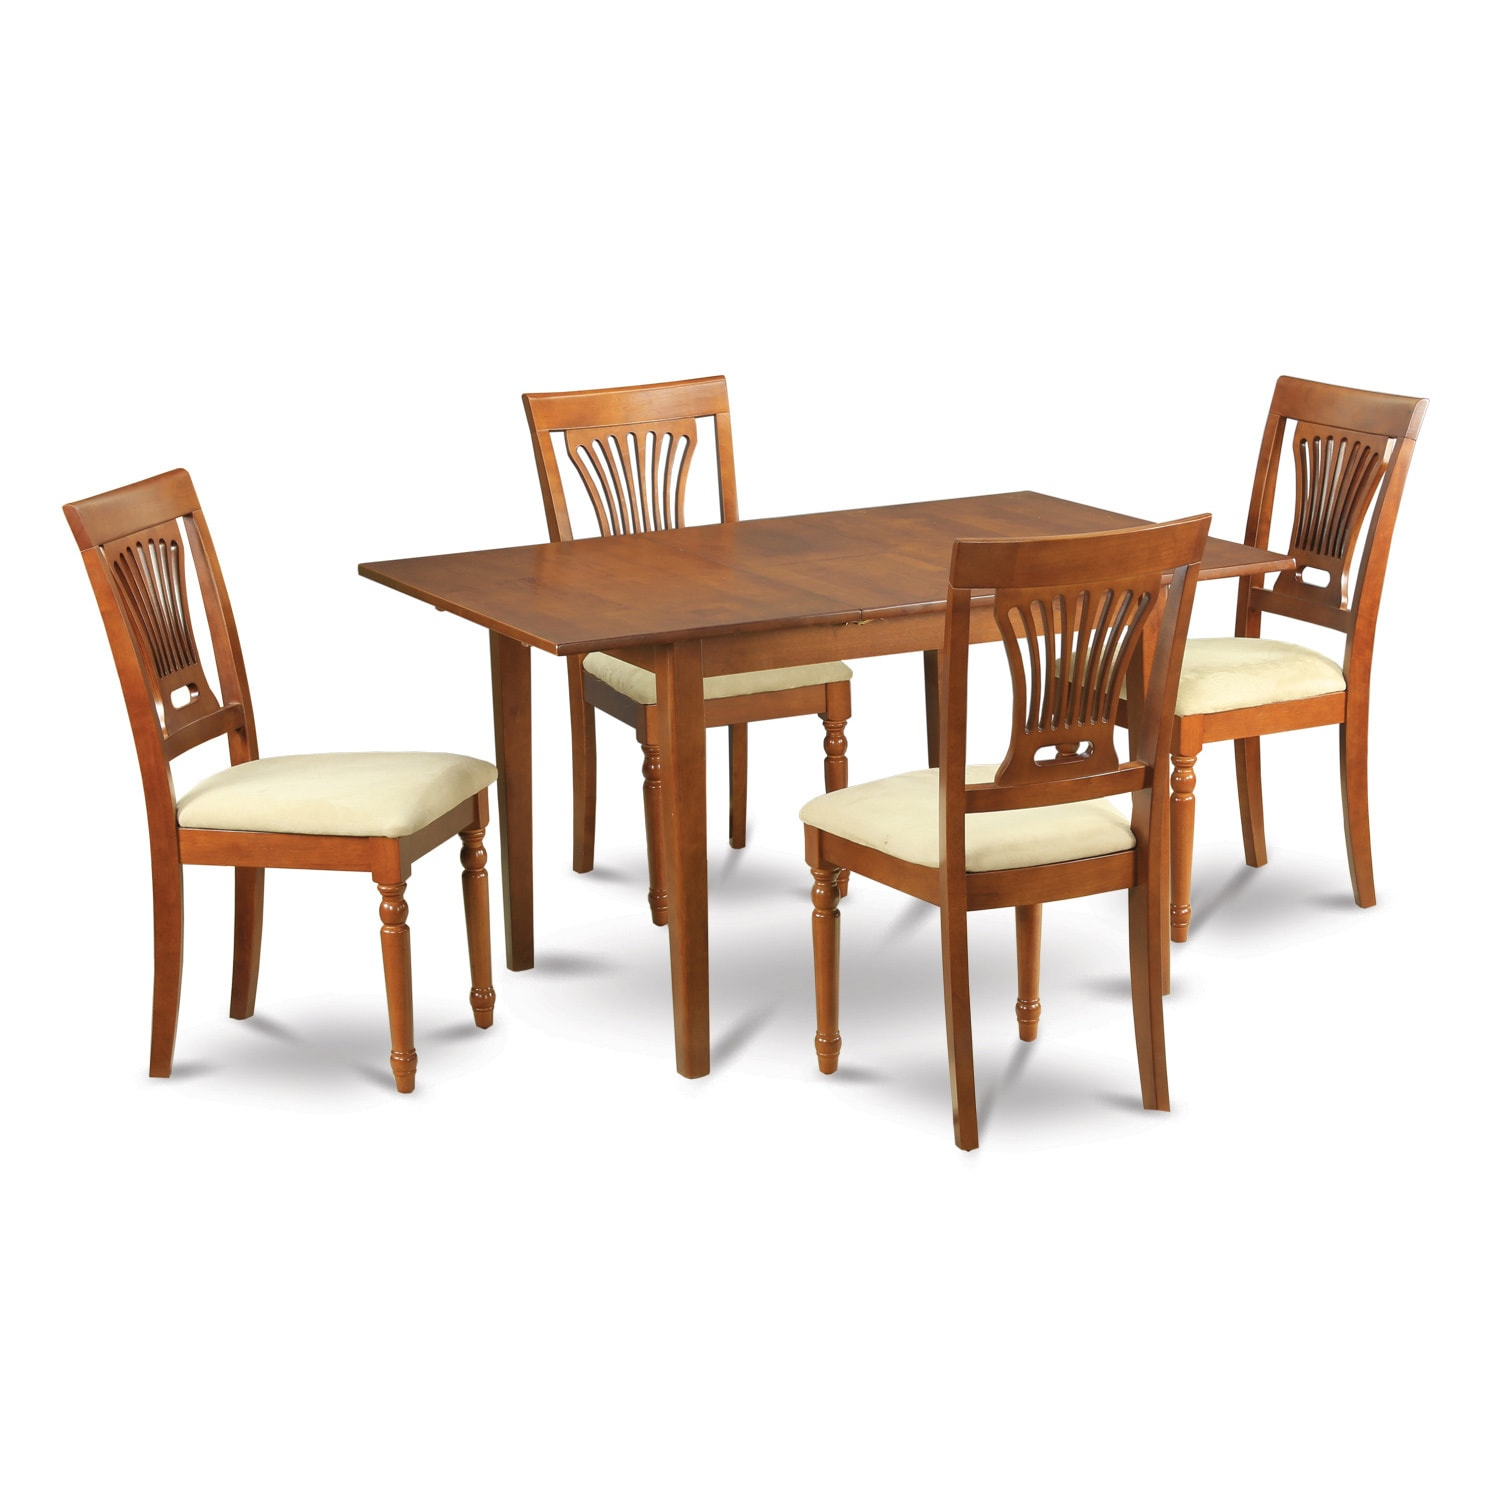 Picasso 5 PC kitchen table set Table with Leaf and 4 Plai...